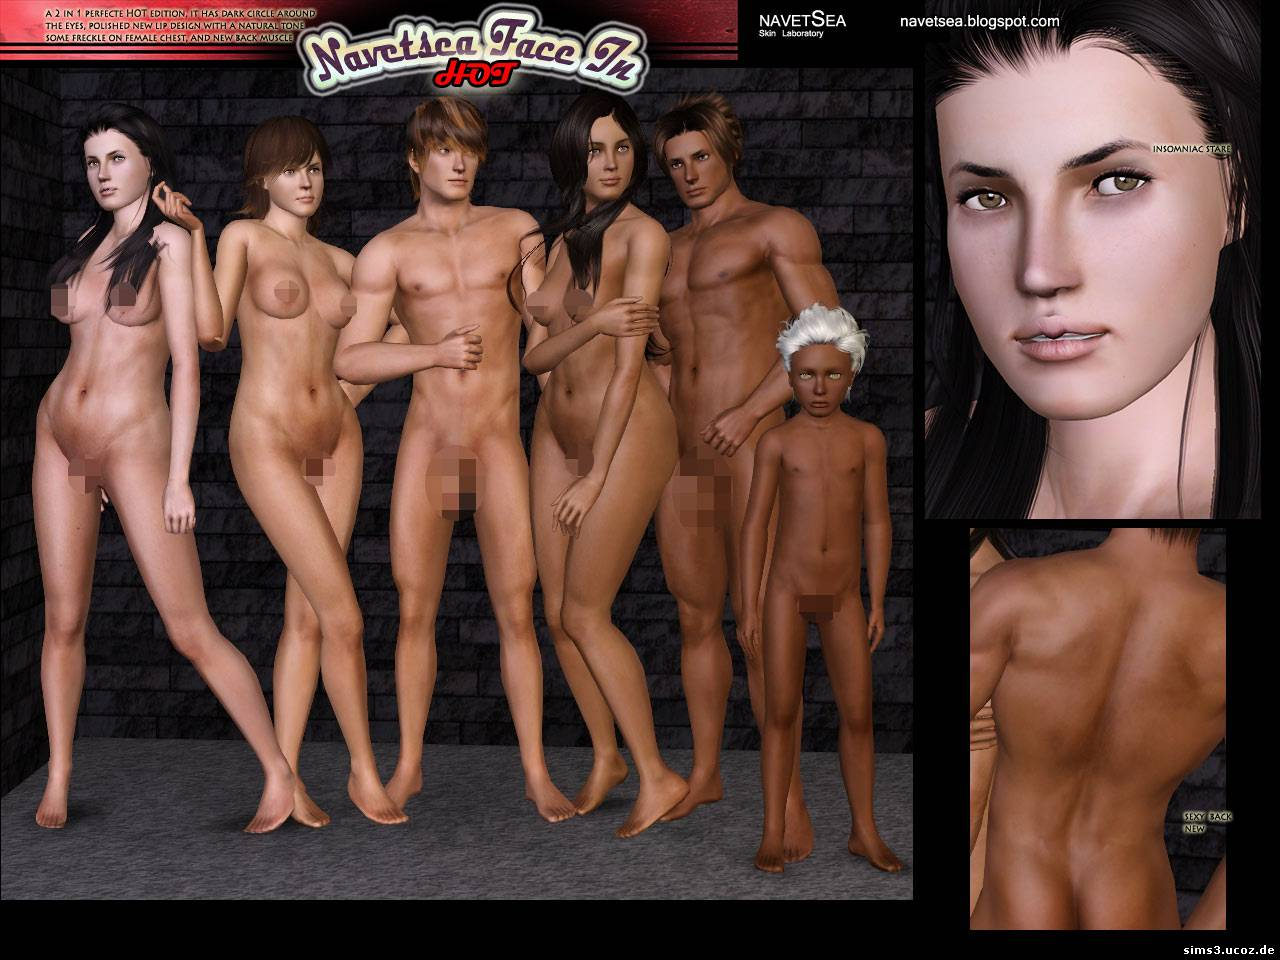 Sims 3 nude male and female patch cartoon girls